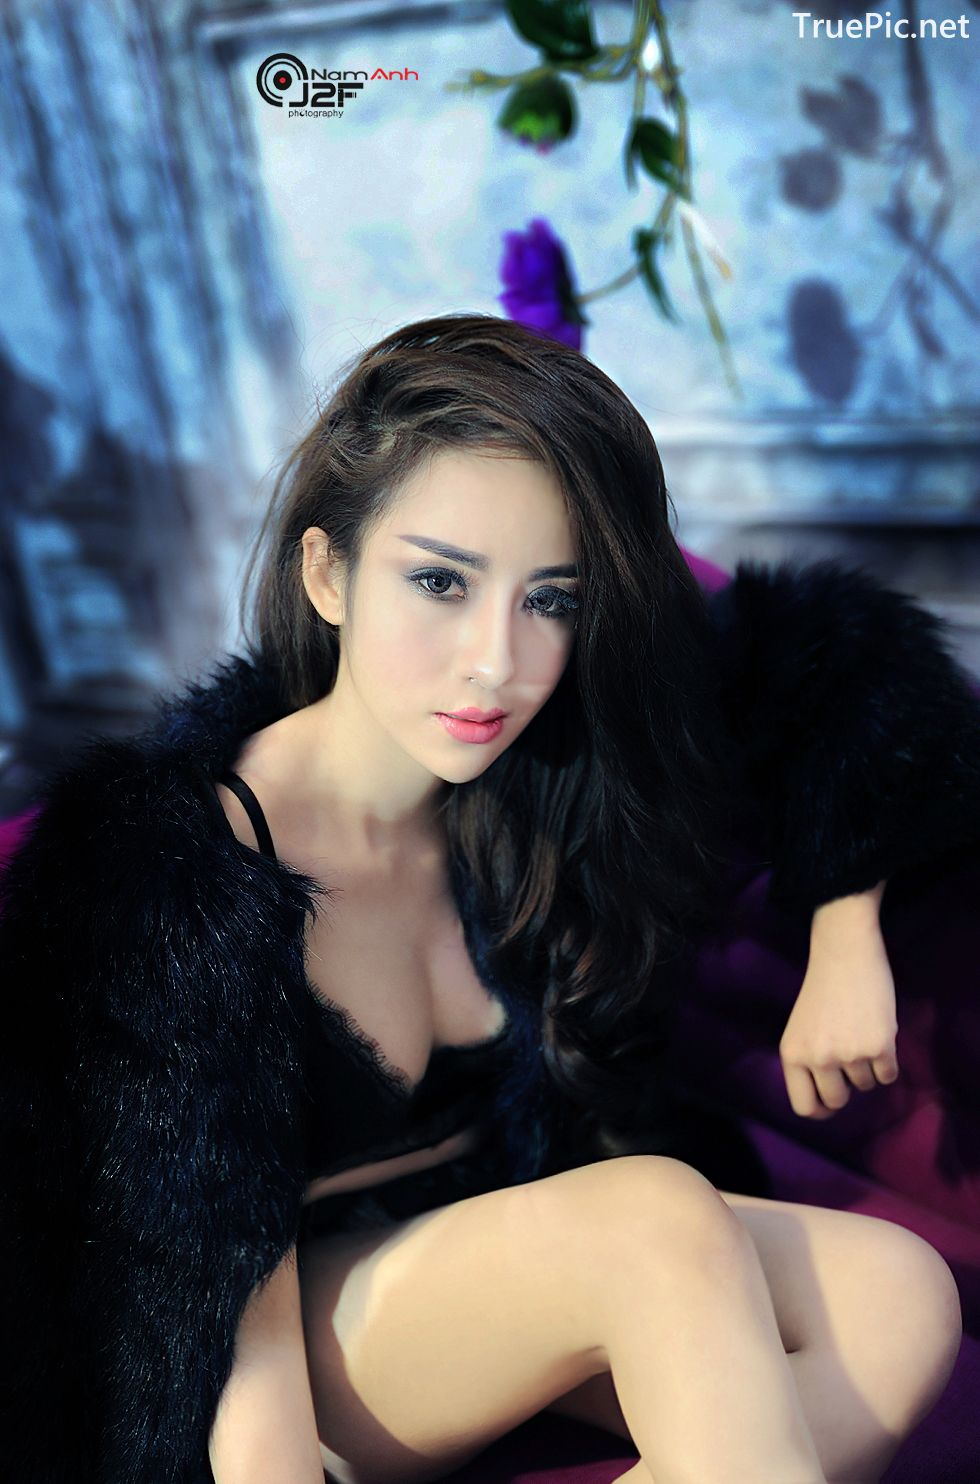 Image-Vietnamese-Model-Sexy-Beauty-of-Beautiful-Girls-Taken-by-NamAnh-Photography-1-TruePic.net- Picture-10